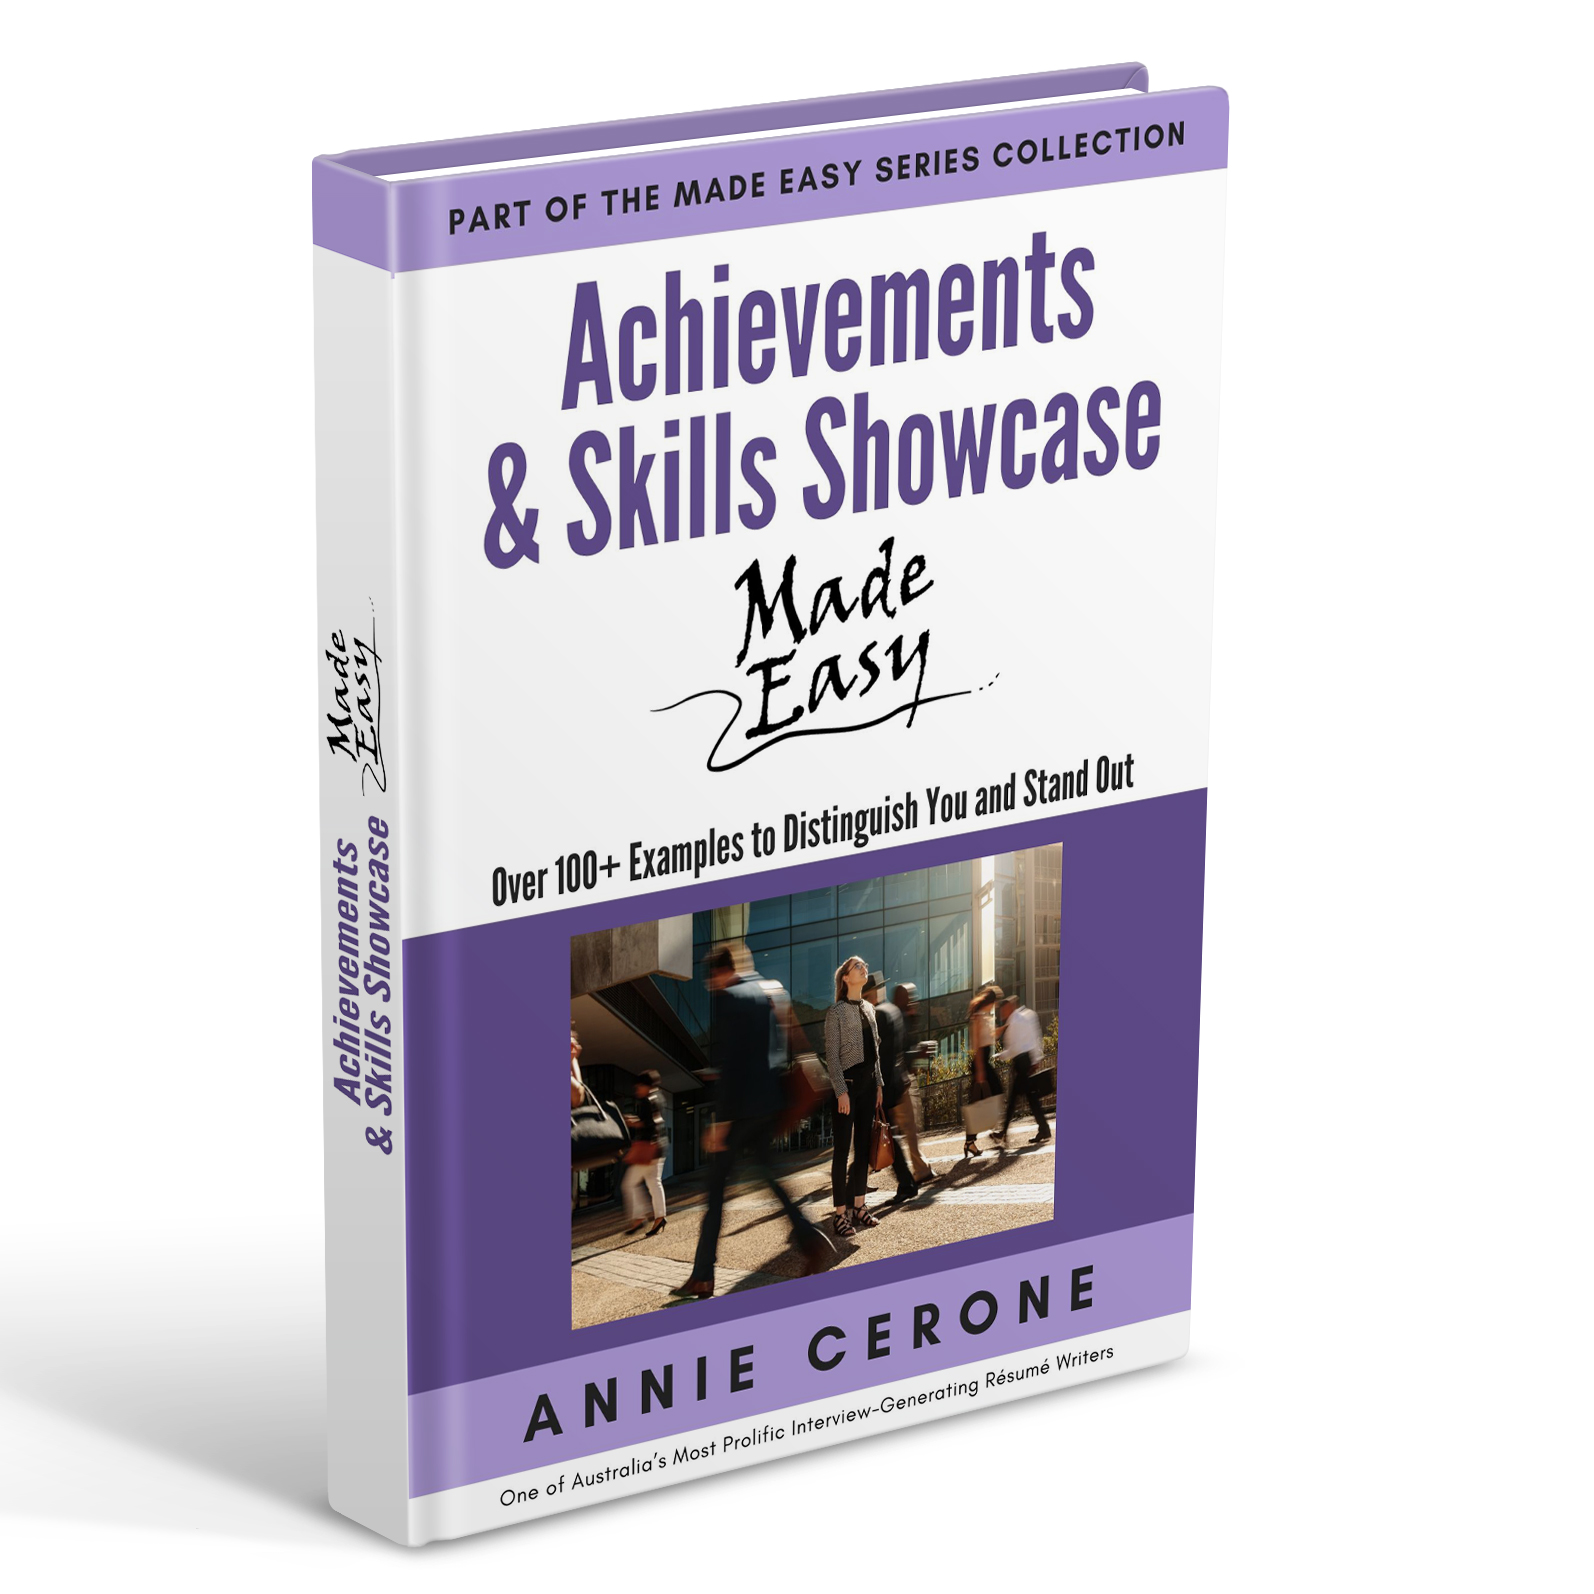 Achievements & Skills Showcase Made Easy ► Over 100+ Examples to Distinguish You and Stand Out